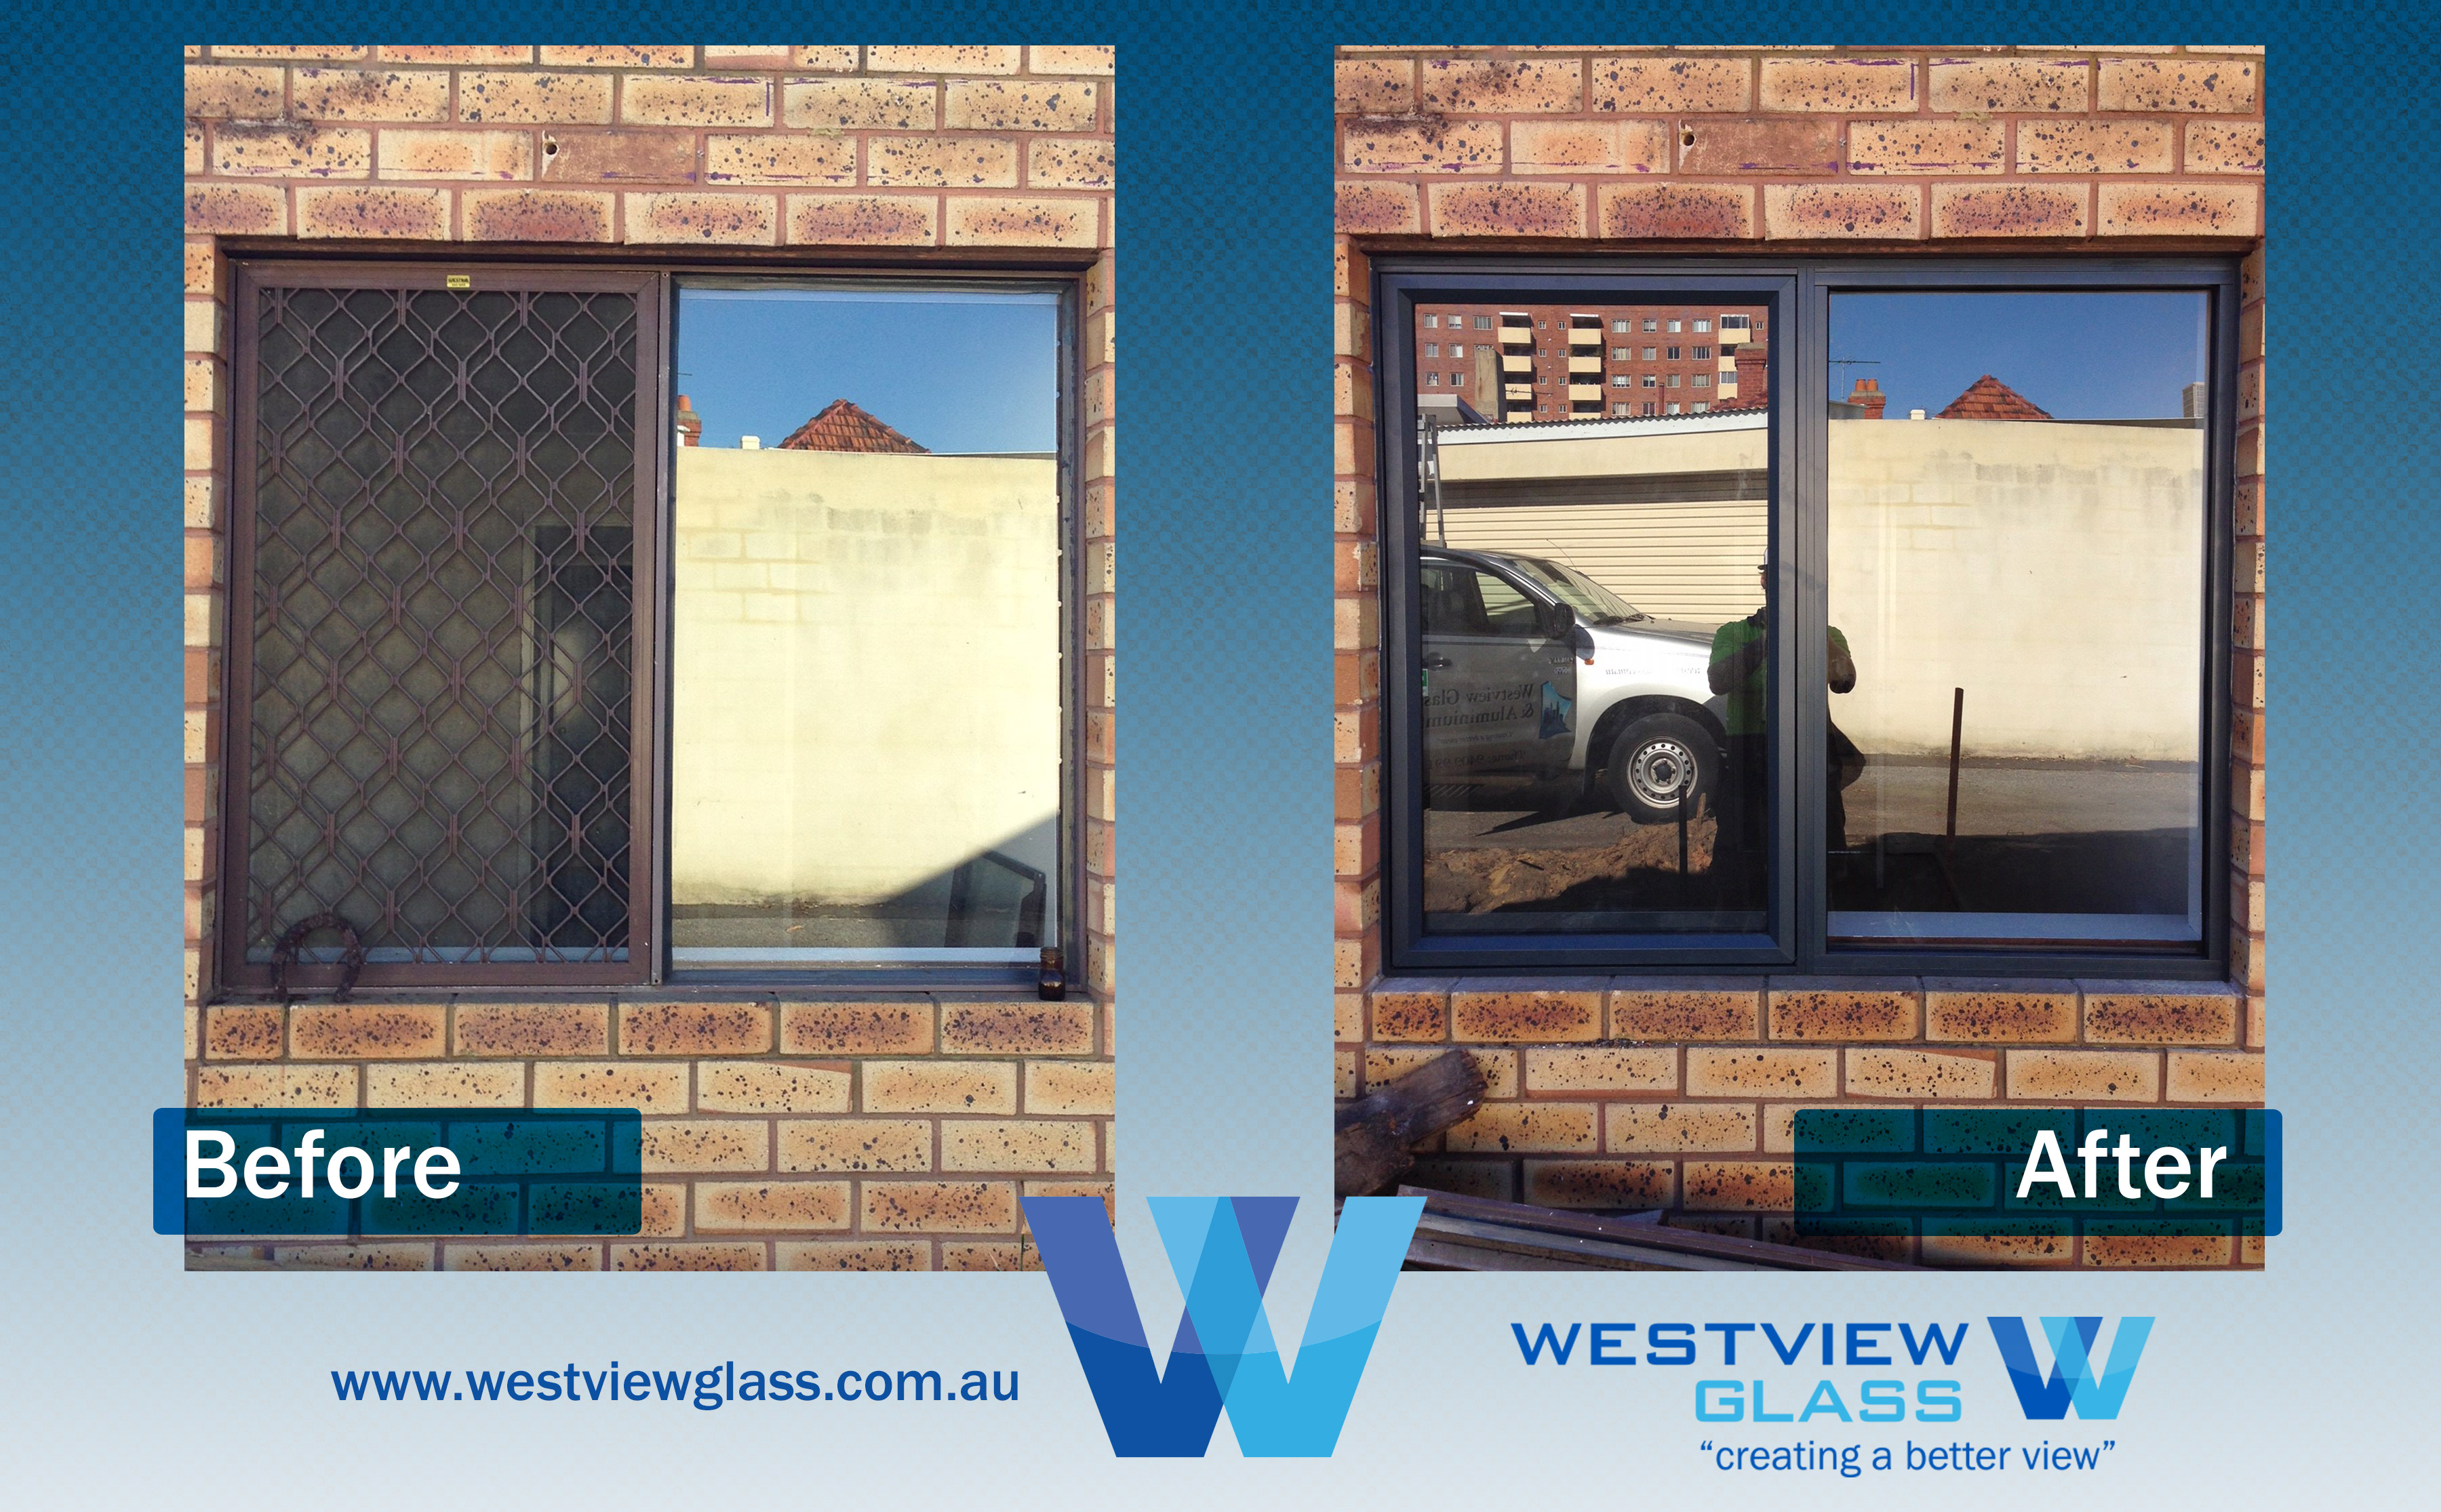 Awning Window Brown Slider with Dec Grille ADG AwnFix with Inviisgard Copy - Aluminium Window Gallery – Before & After